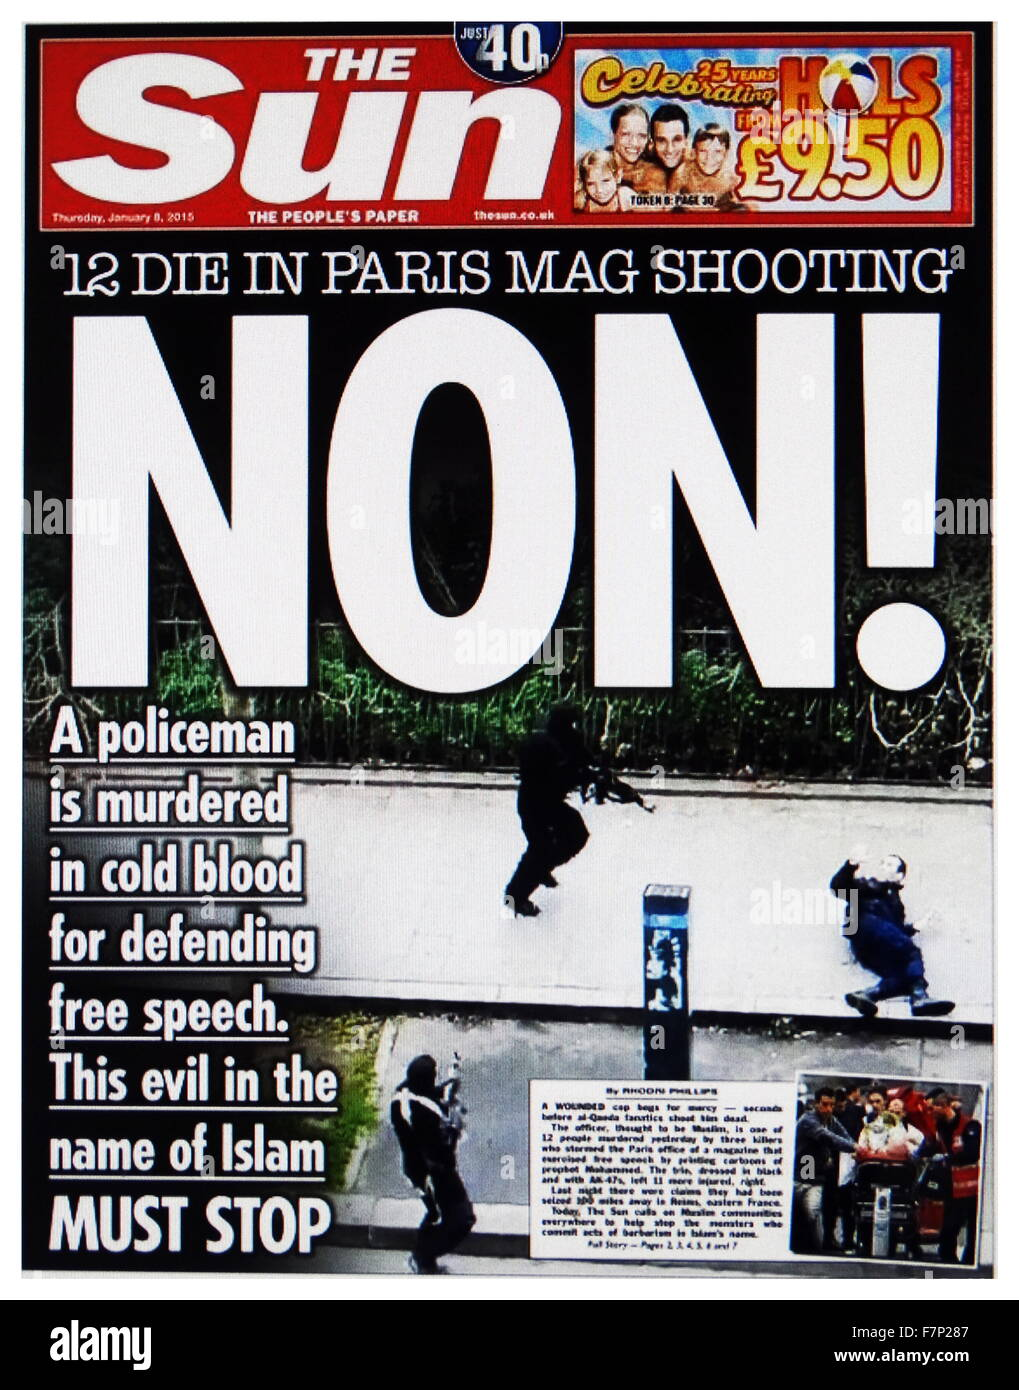 The Sun' front page headline, during Charlie Hebdo Incident 2015. Charlie Hebdo is a French satirical weekly - Stock Image